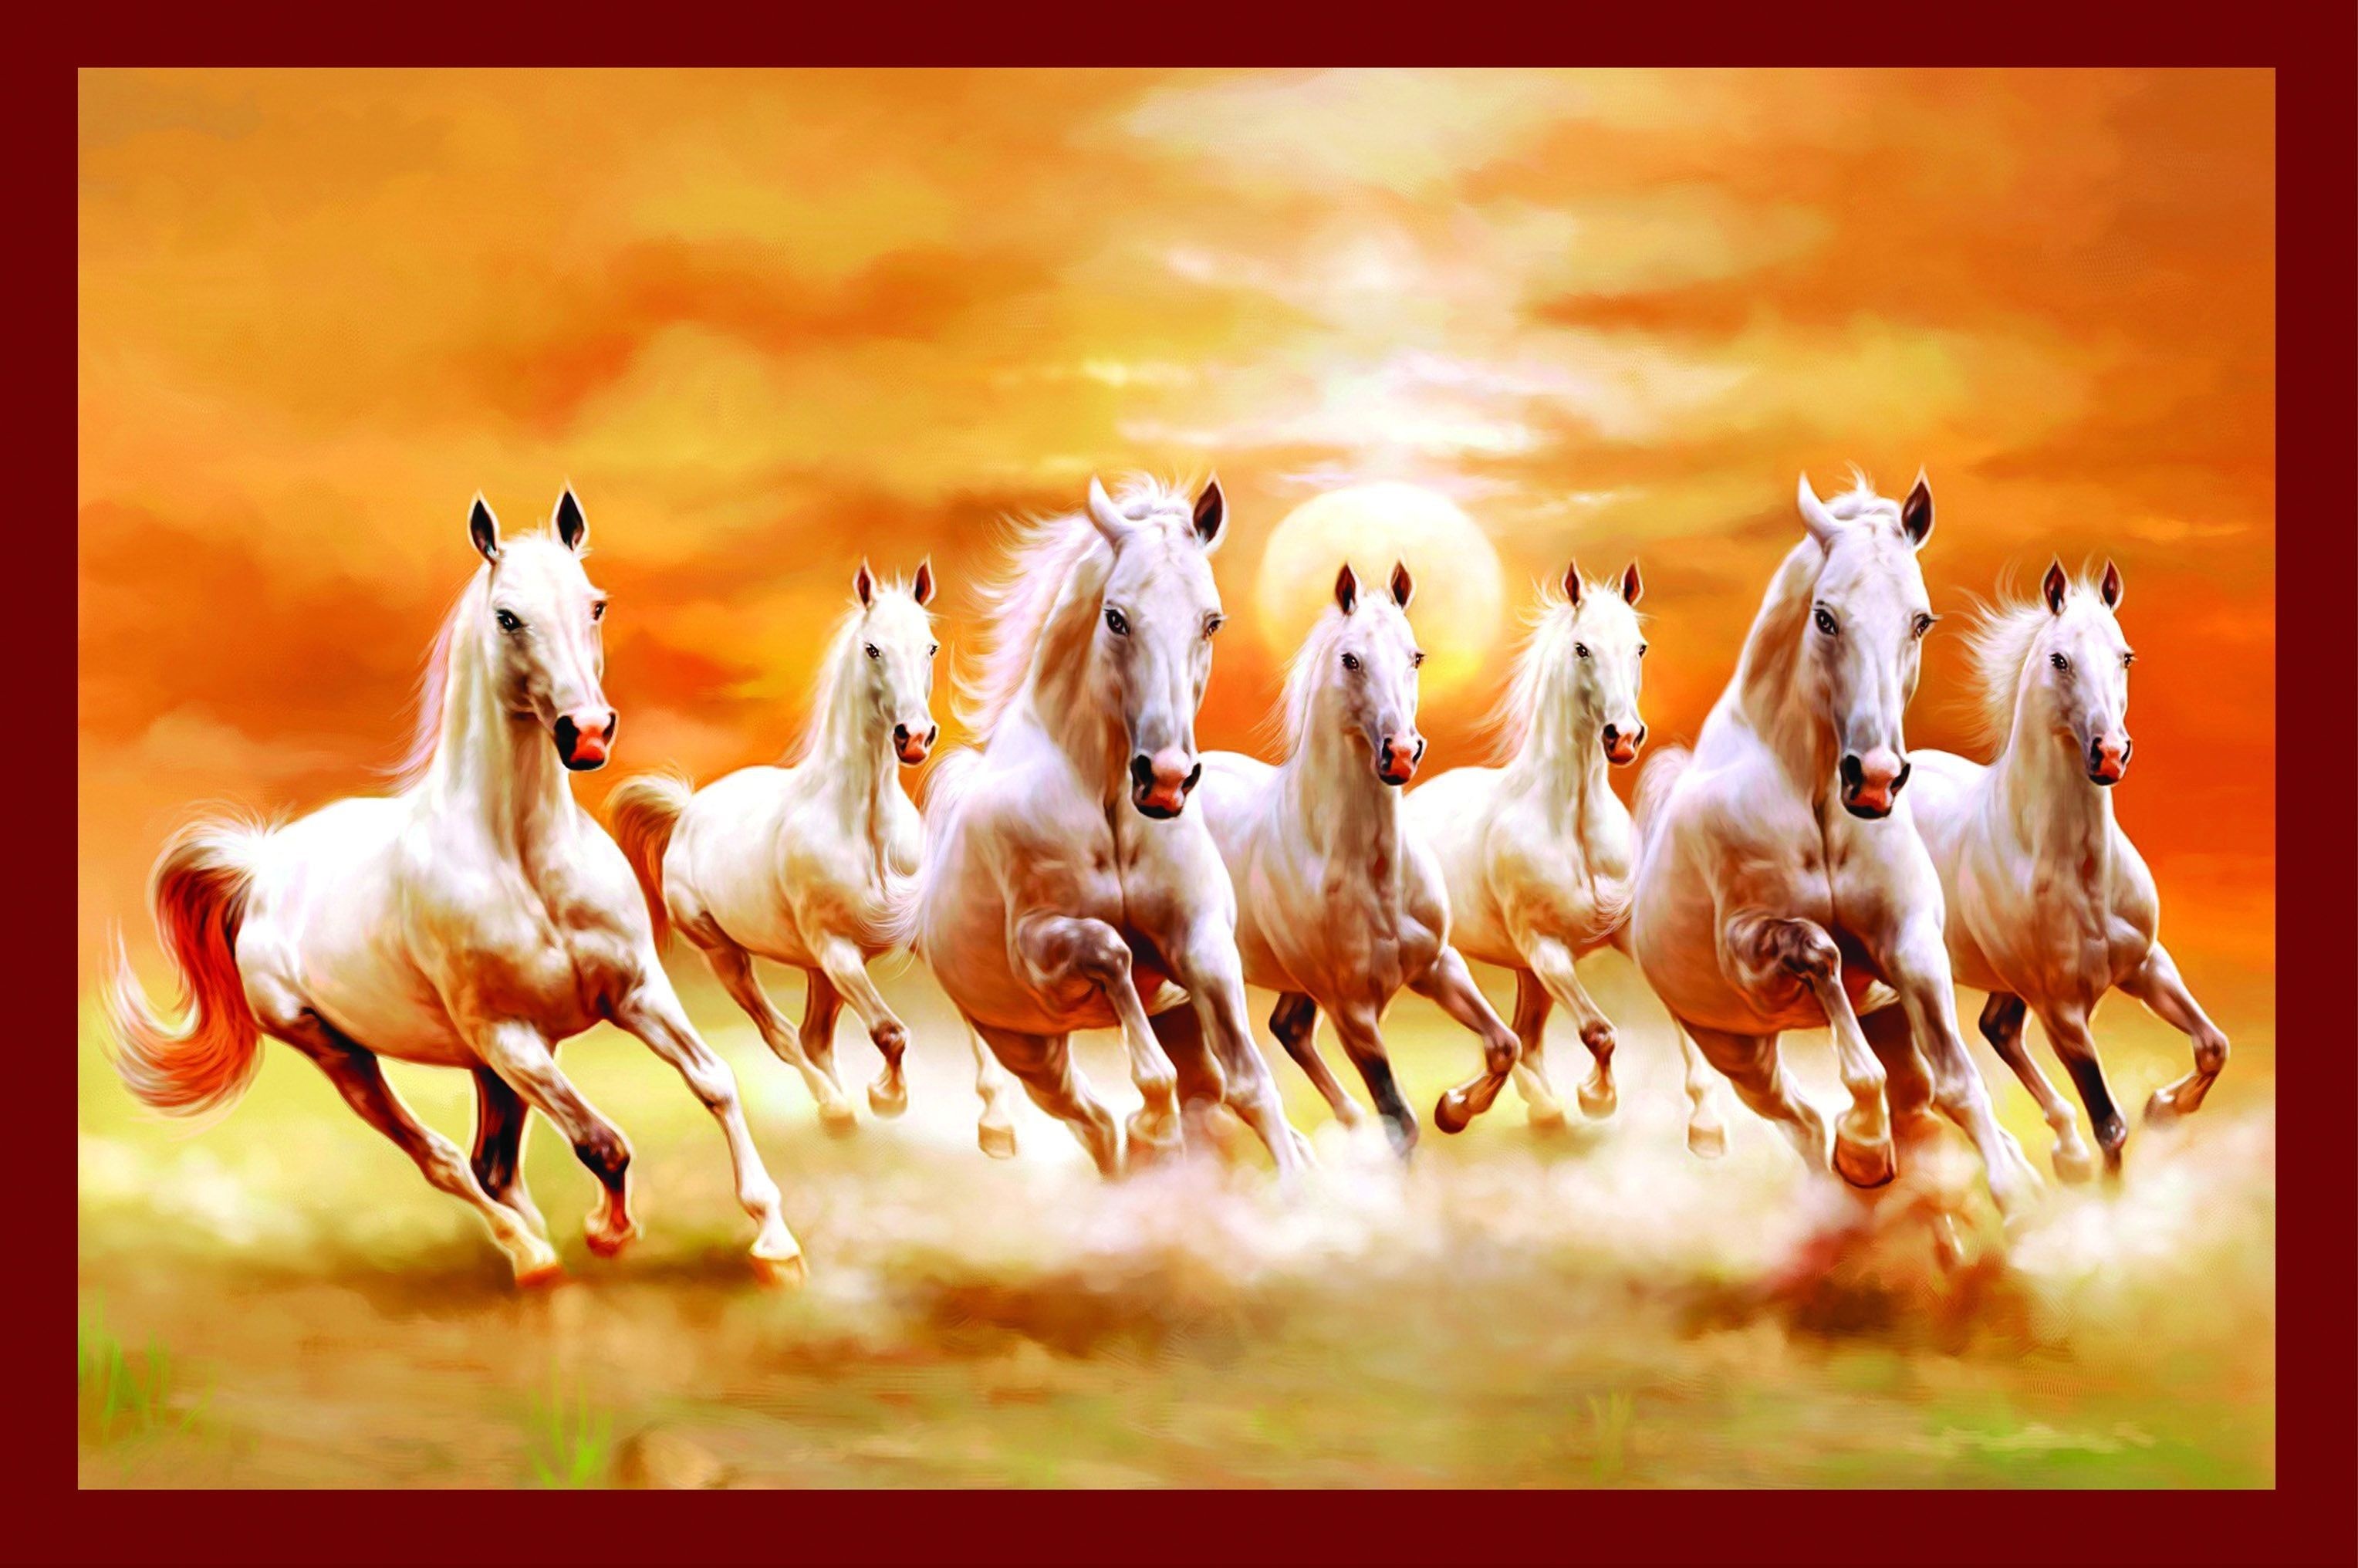 Seven Horse Wallpaper For Iphone